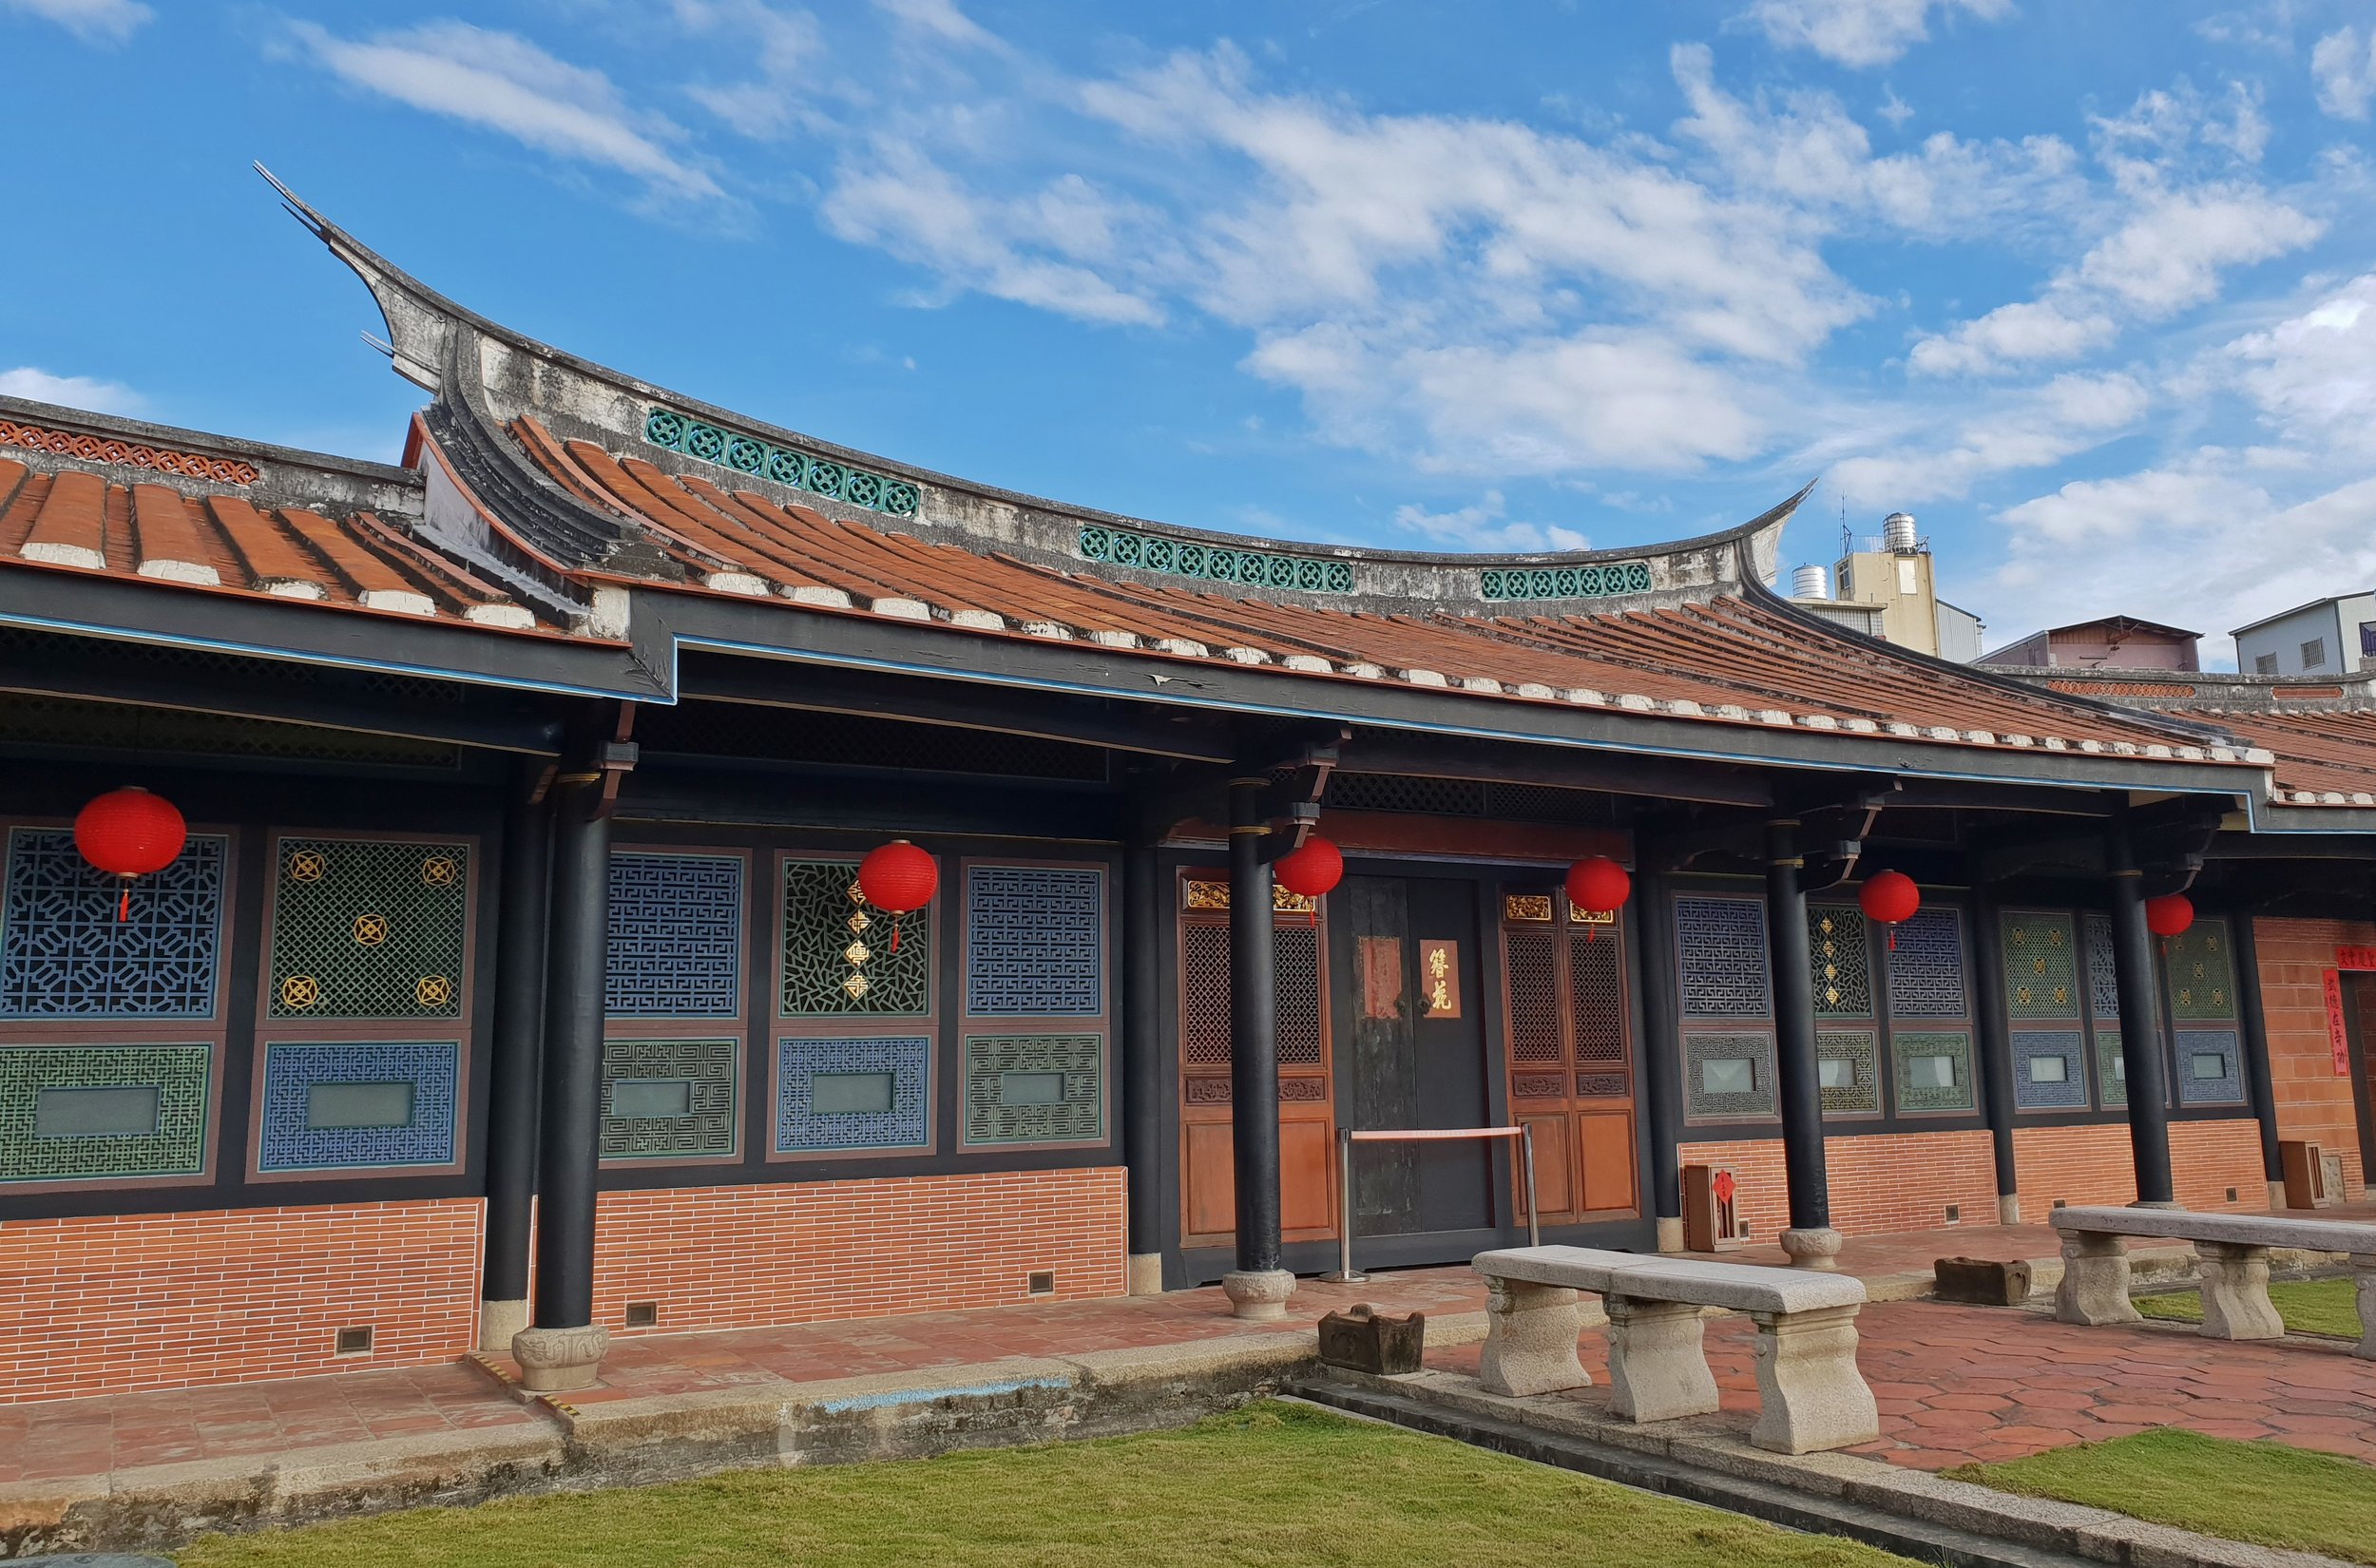 One of the structures in the Gong-Bao Di Hall